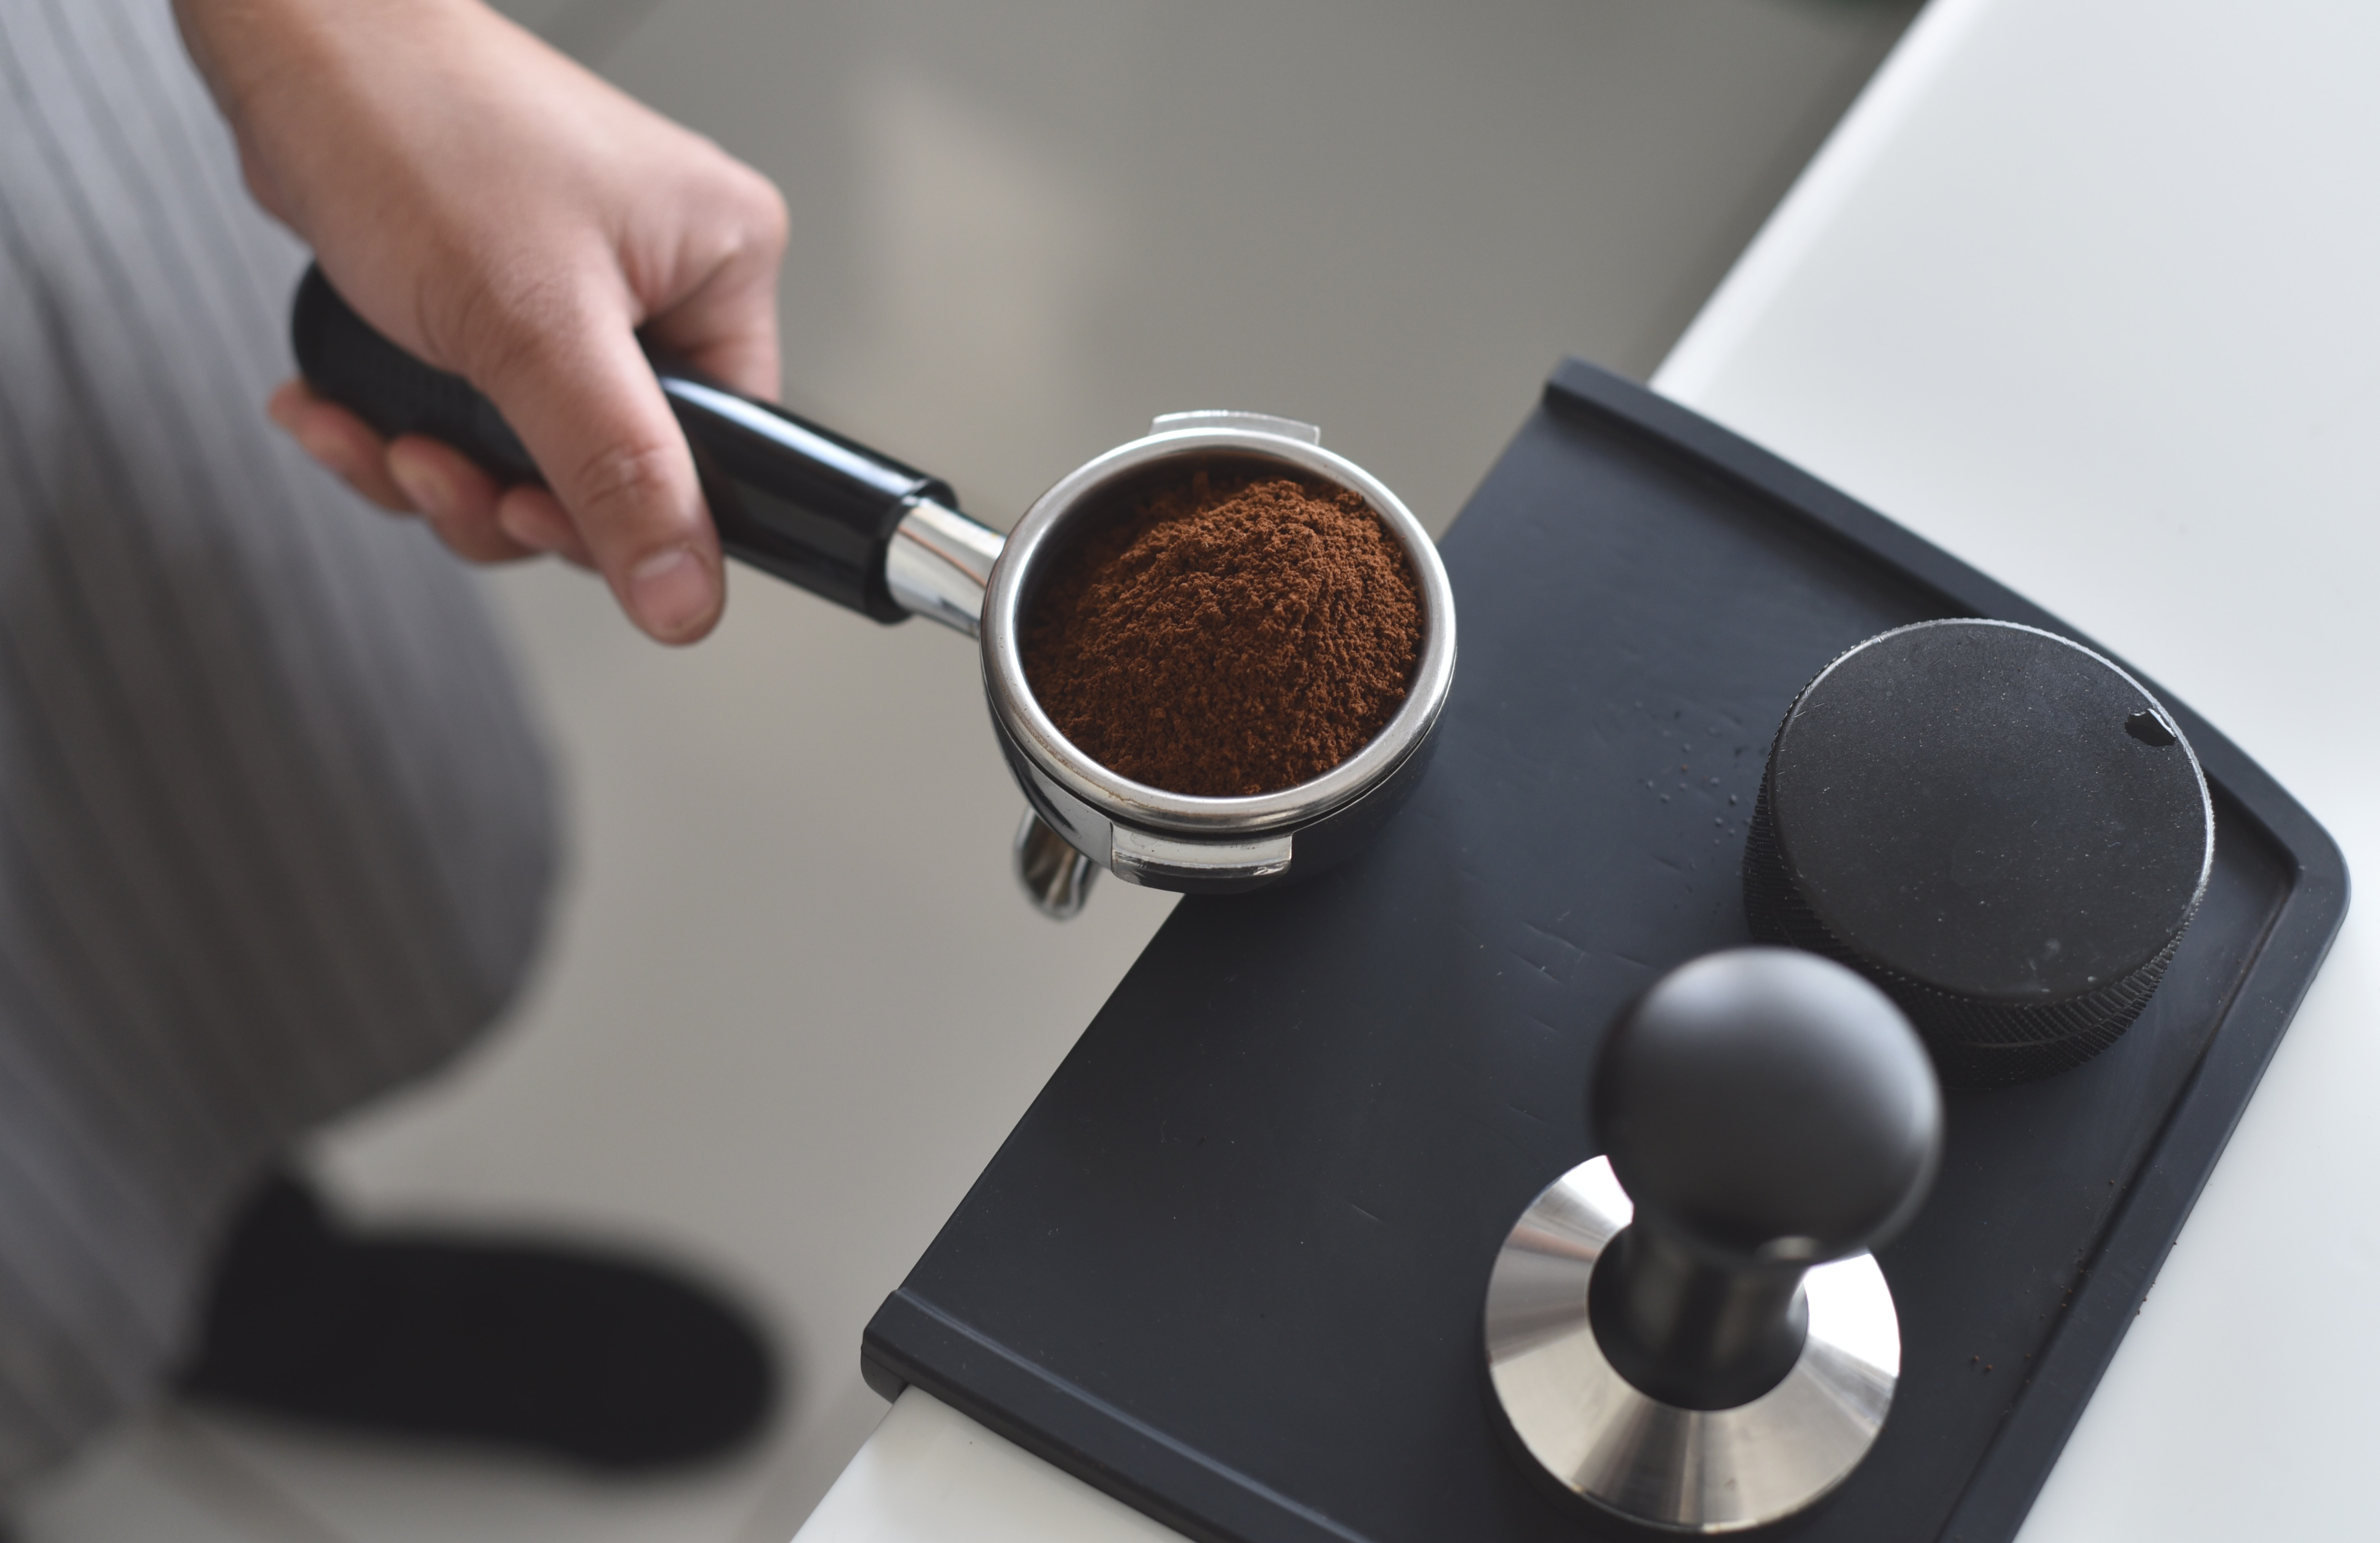 person holding pot with coffee powder